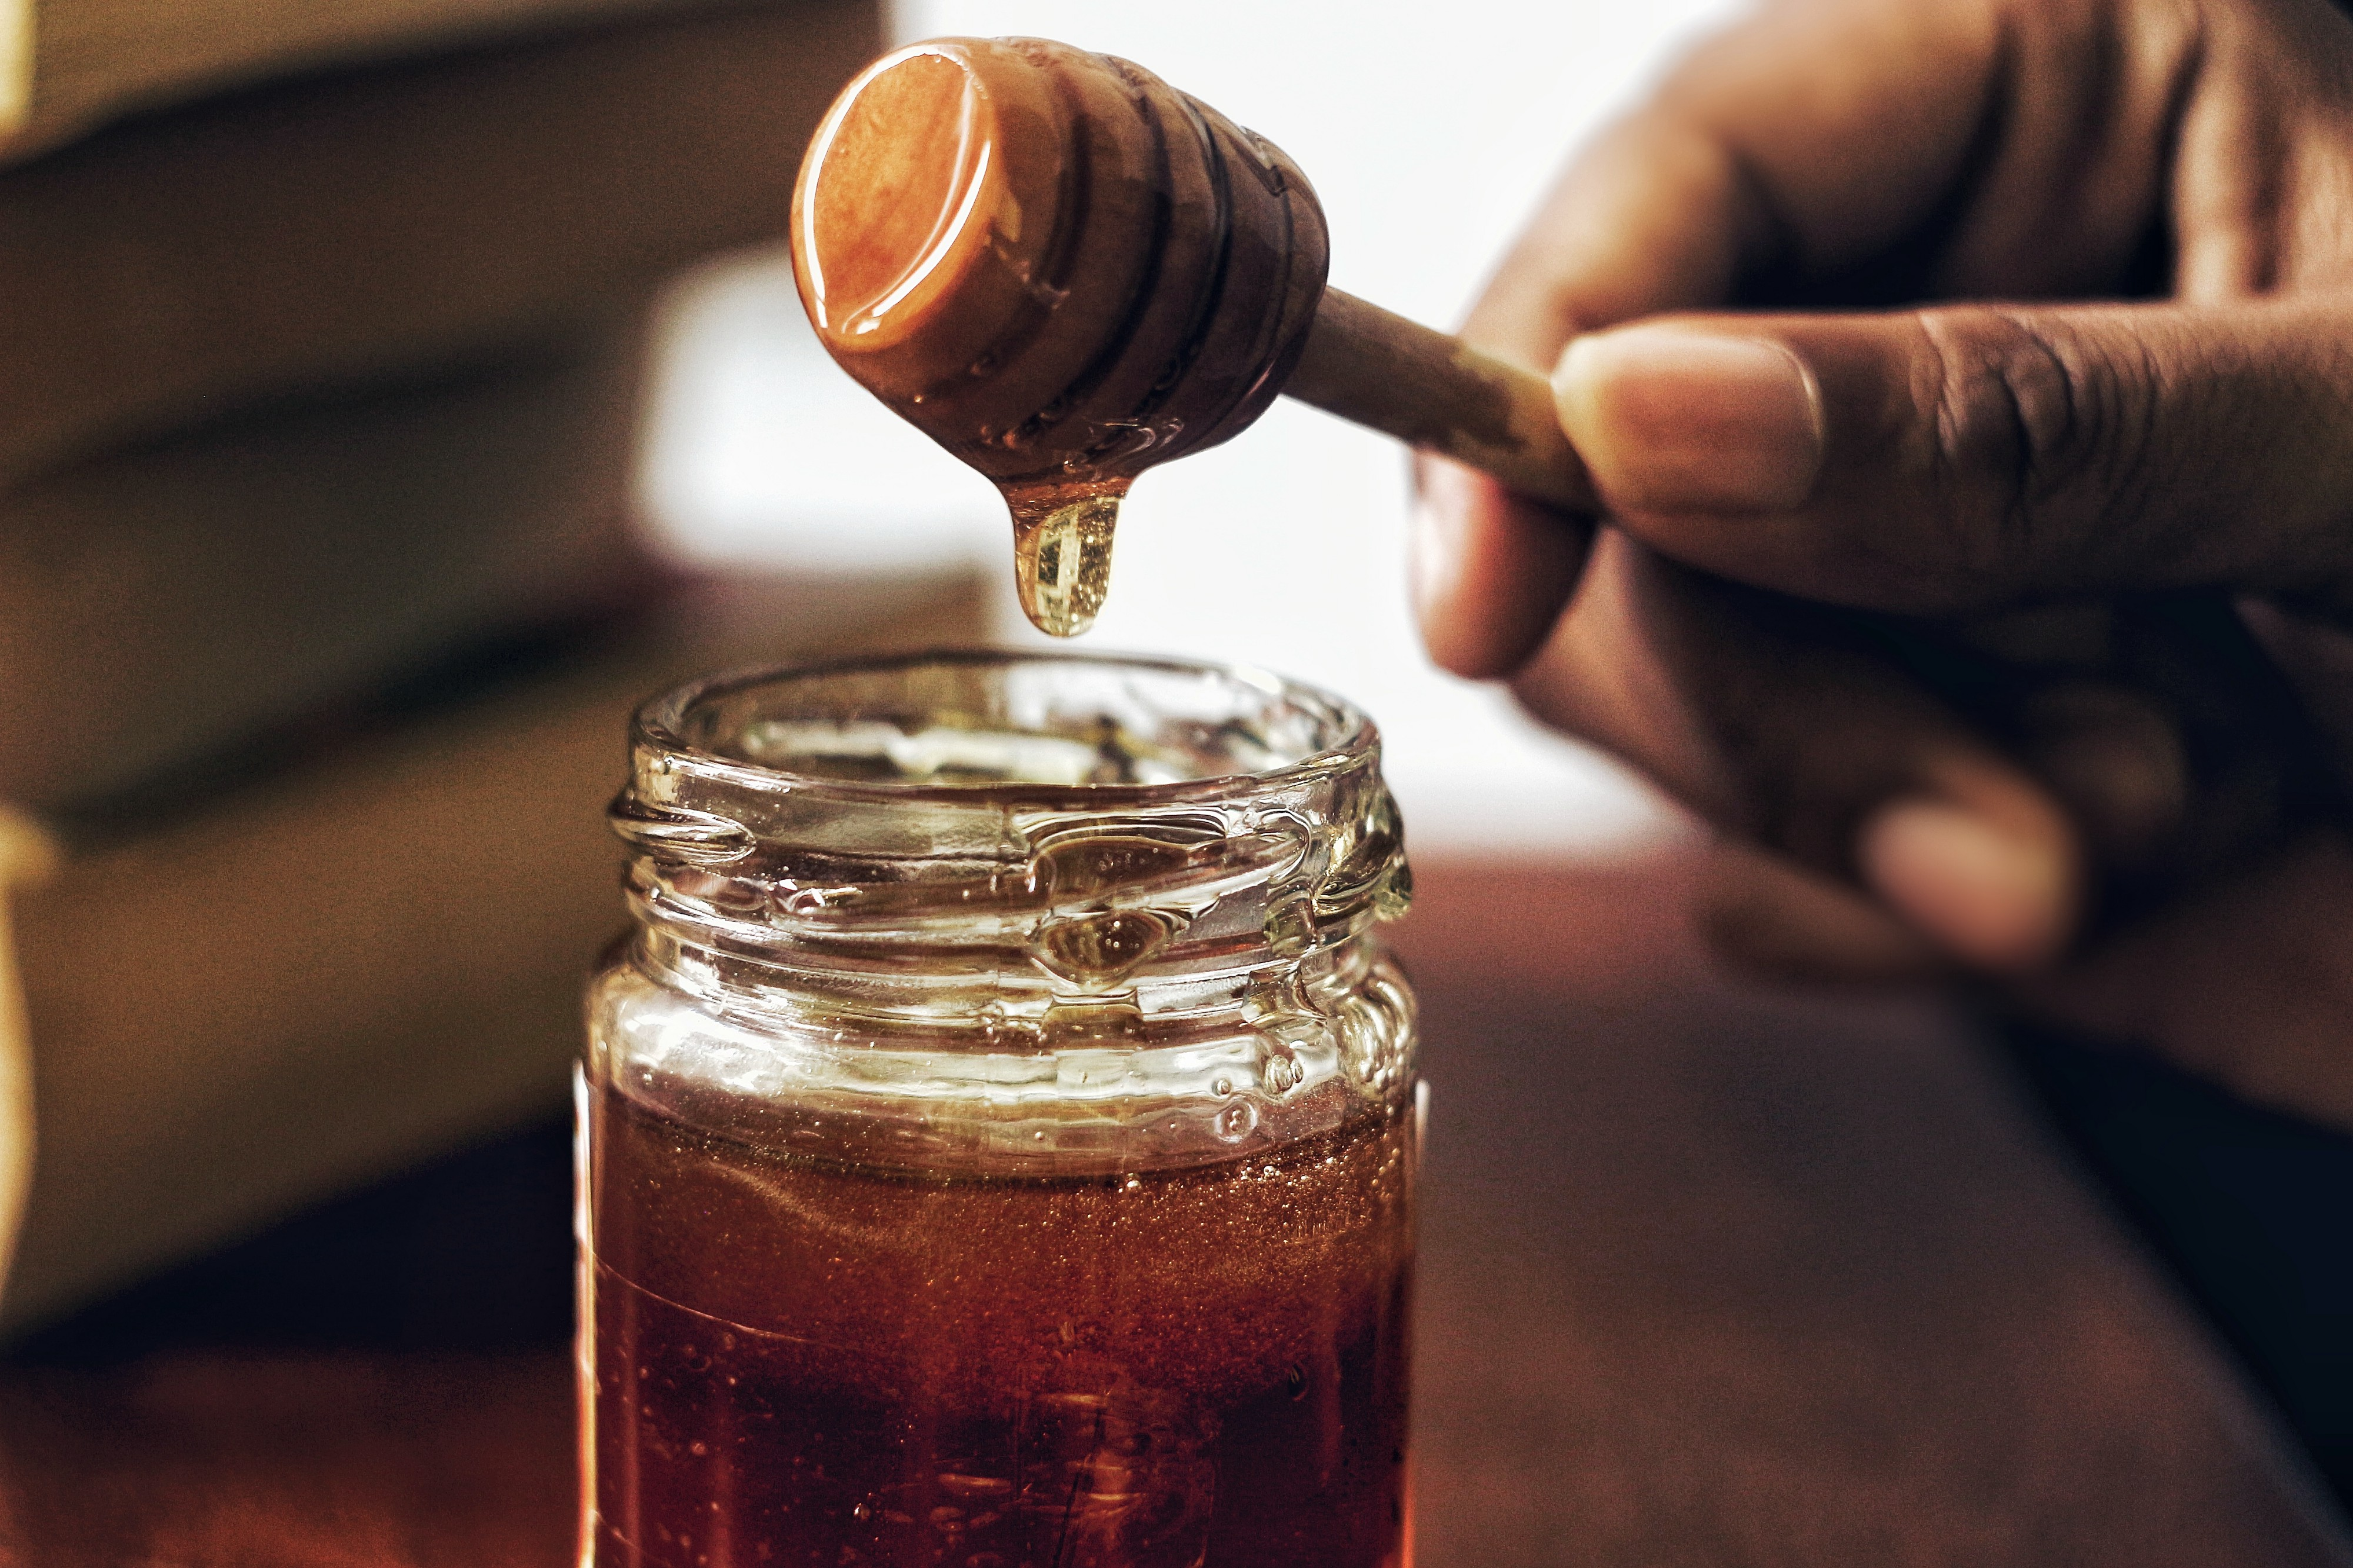 honey dripping from a wooden utensil held between fingers